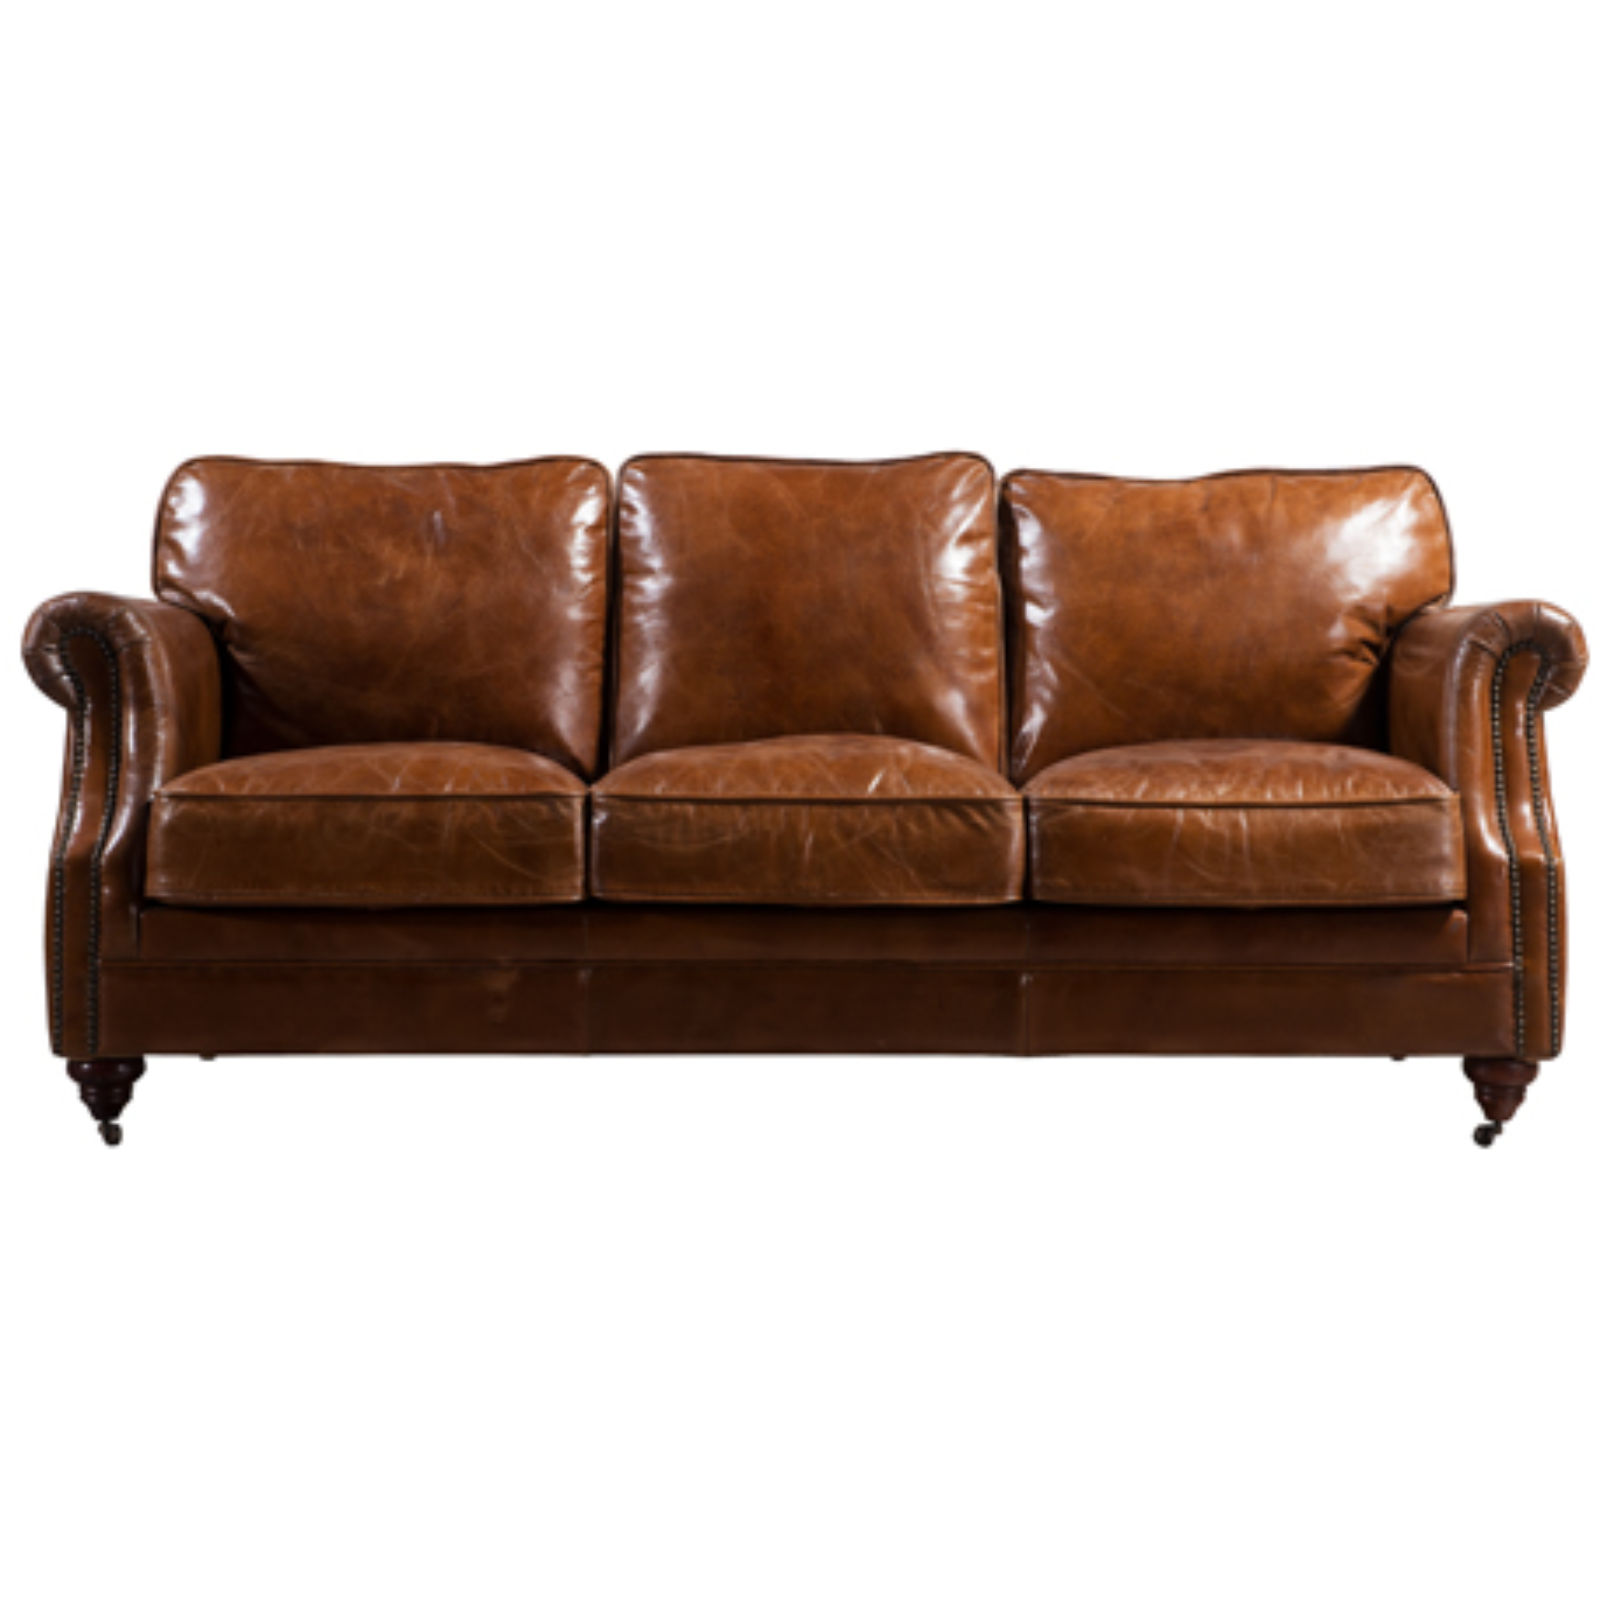 Vintage Leather 3 Seater Sofa Settee